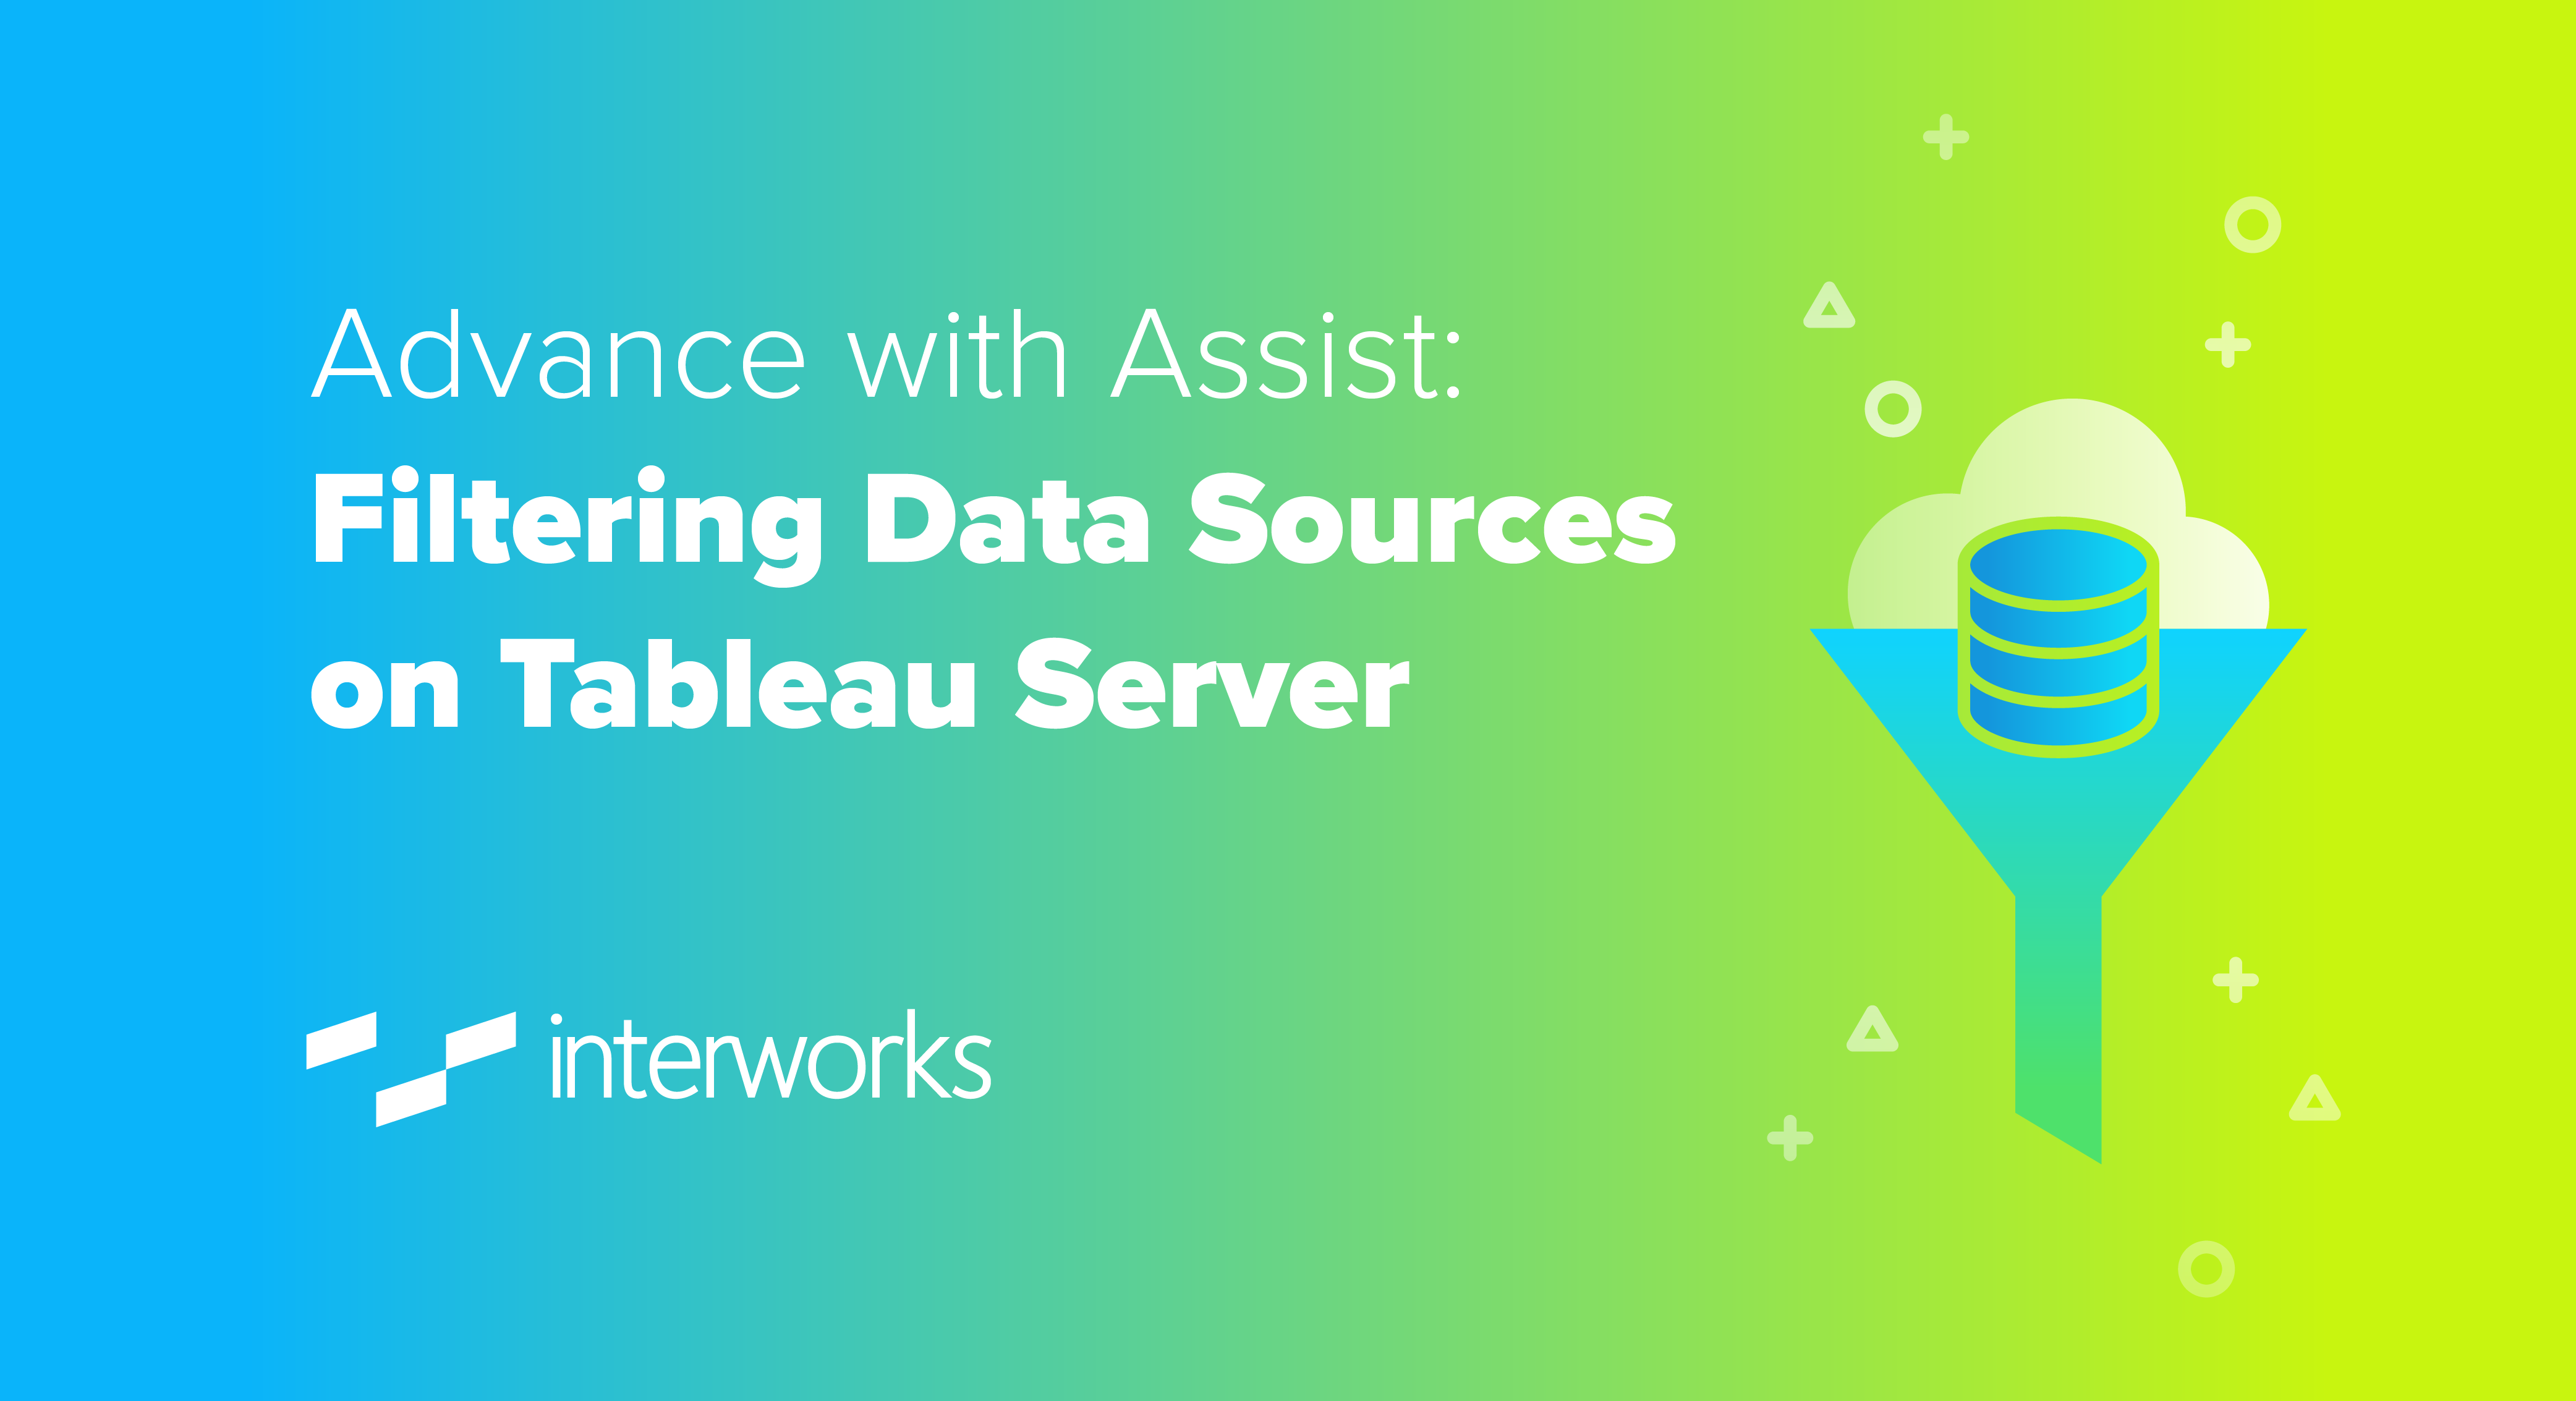 Advance with Assist: Filtering Data Sources on Tableau Server